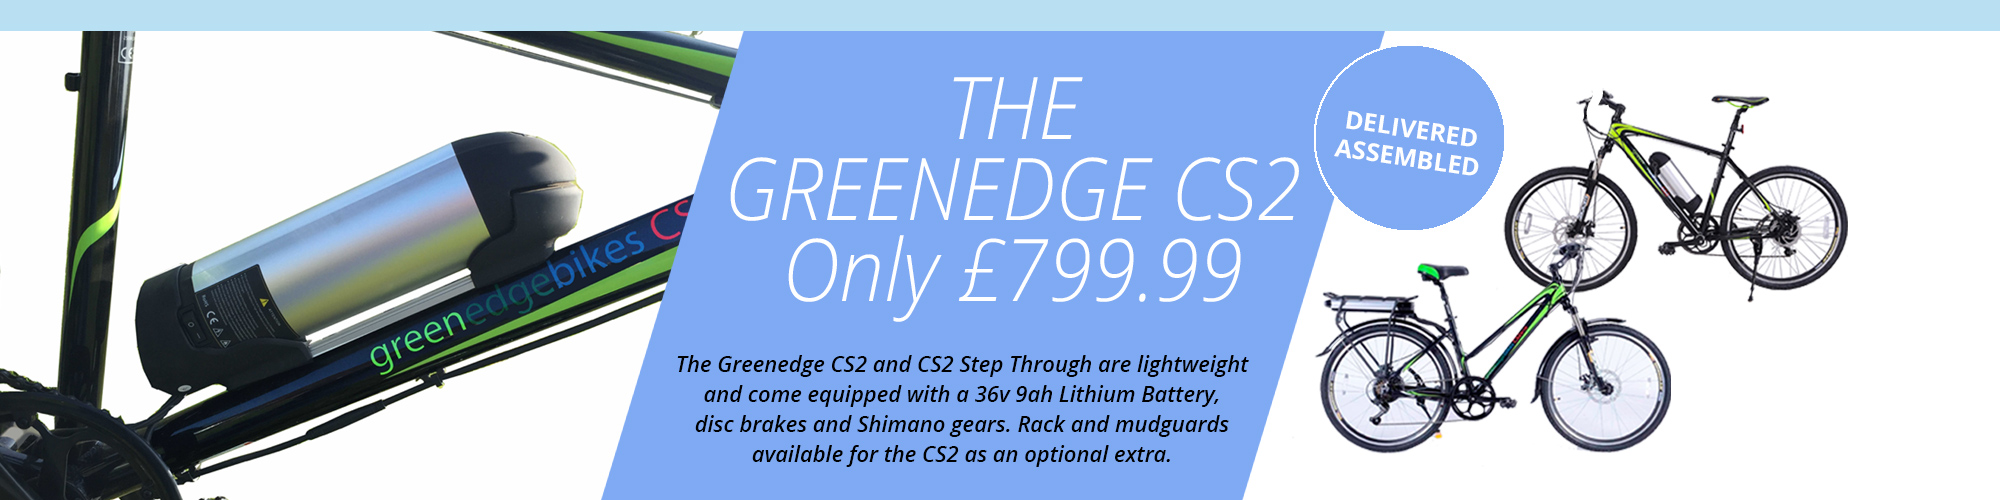 Greenedge CS2 Electric Bike